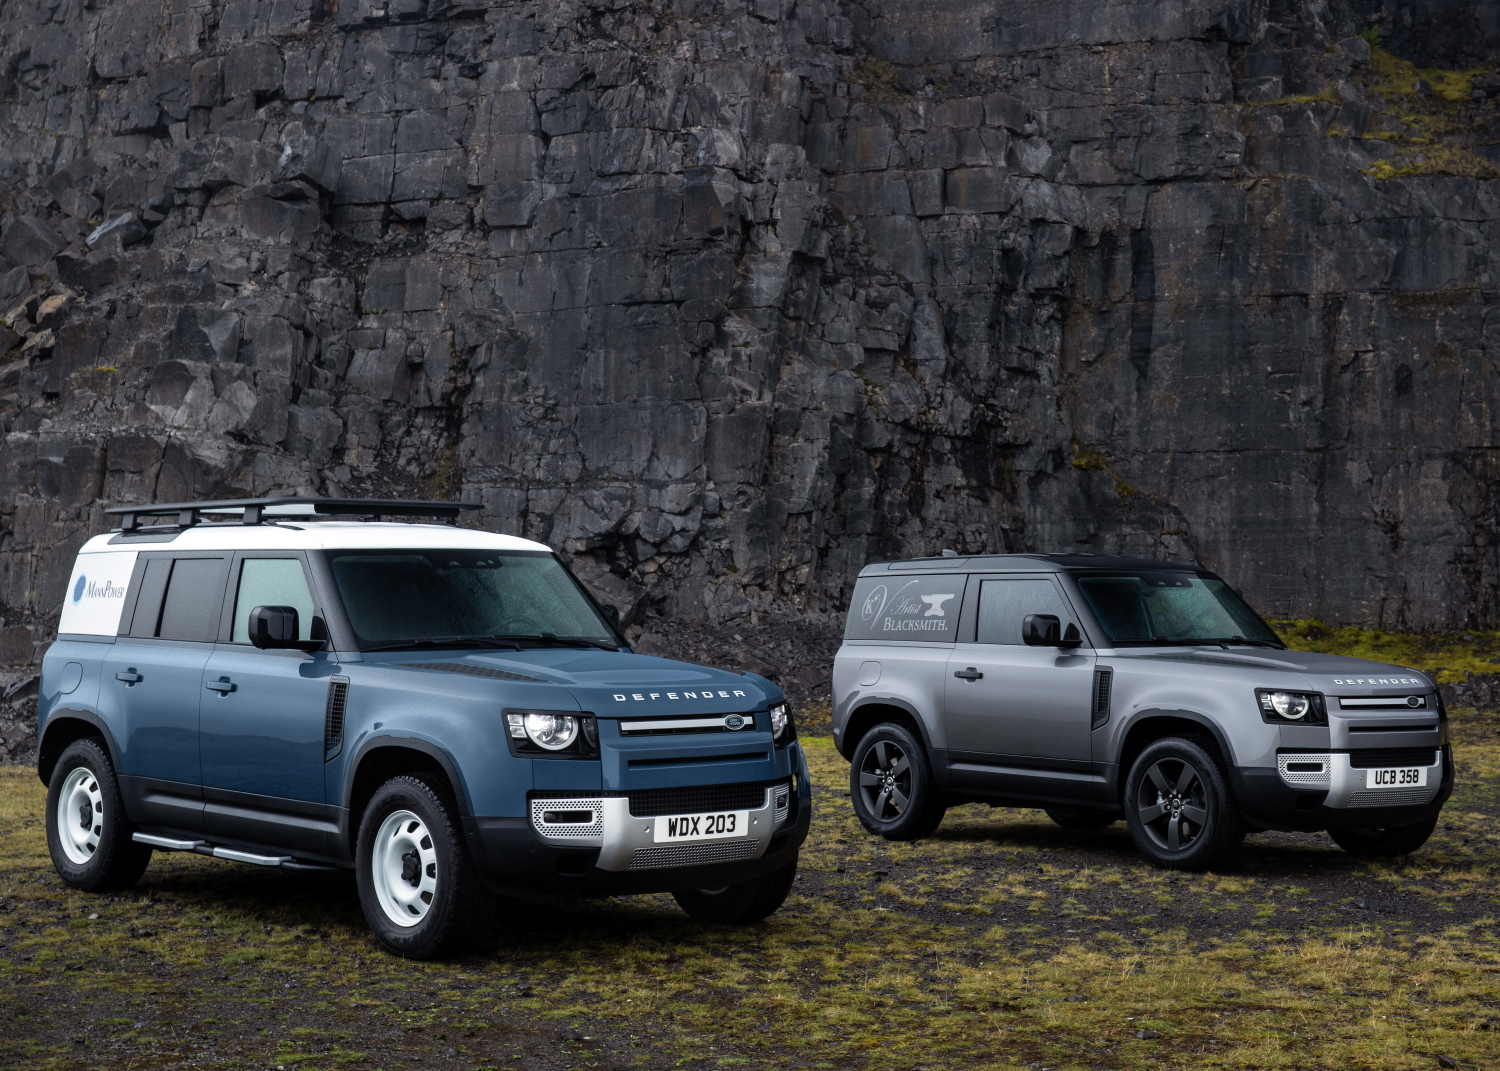 Land Rover Defender Hard Top: most Rugged and Durable Commercial Vehicle on Sale now - Image 6